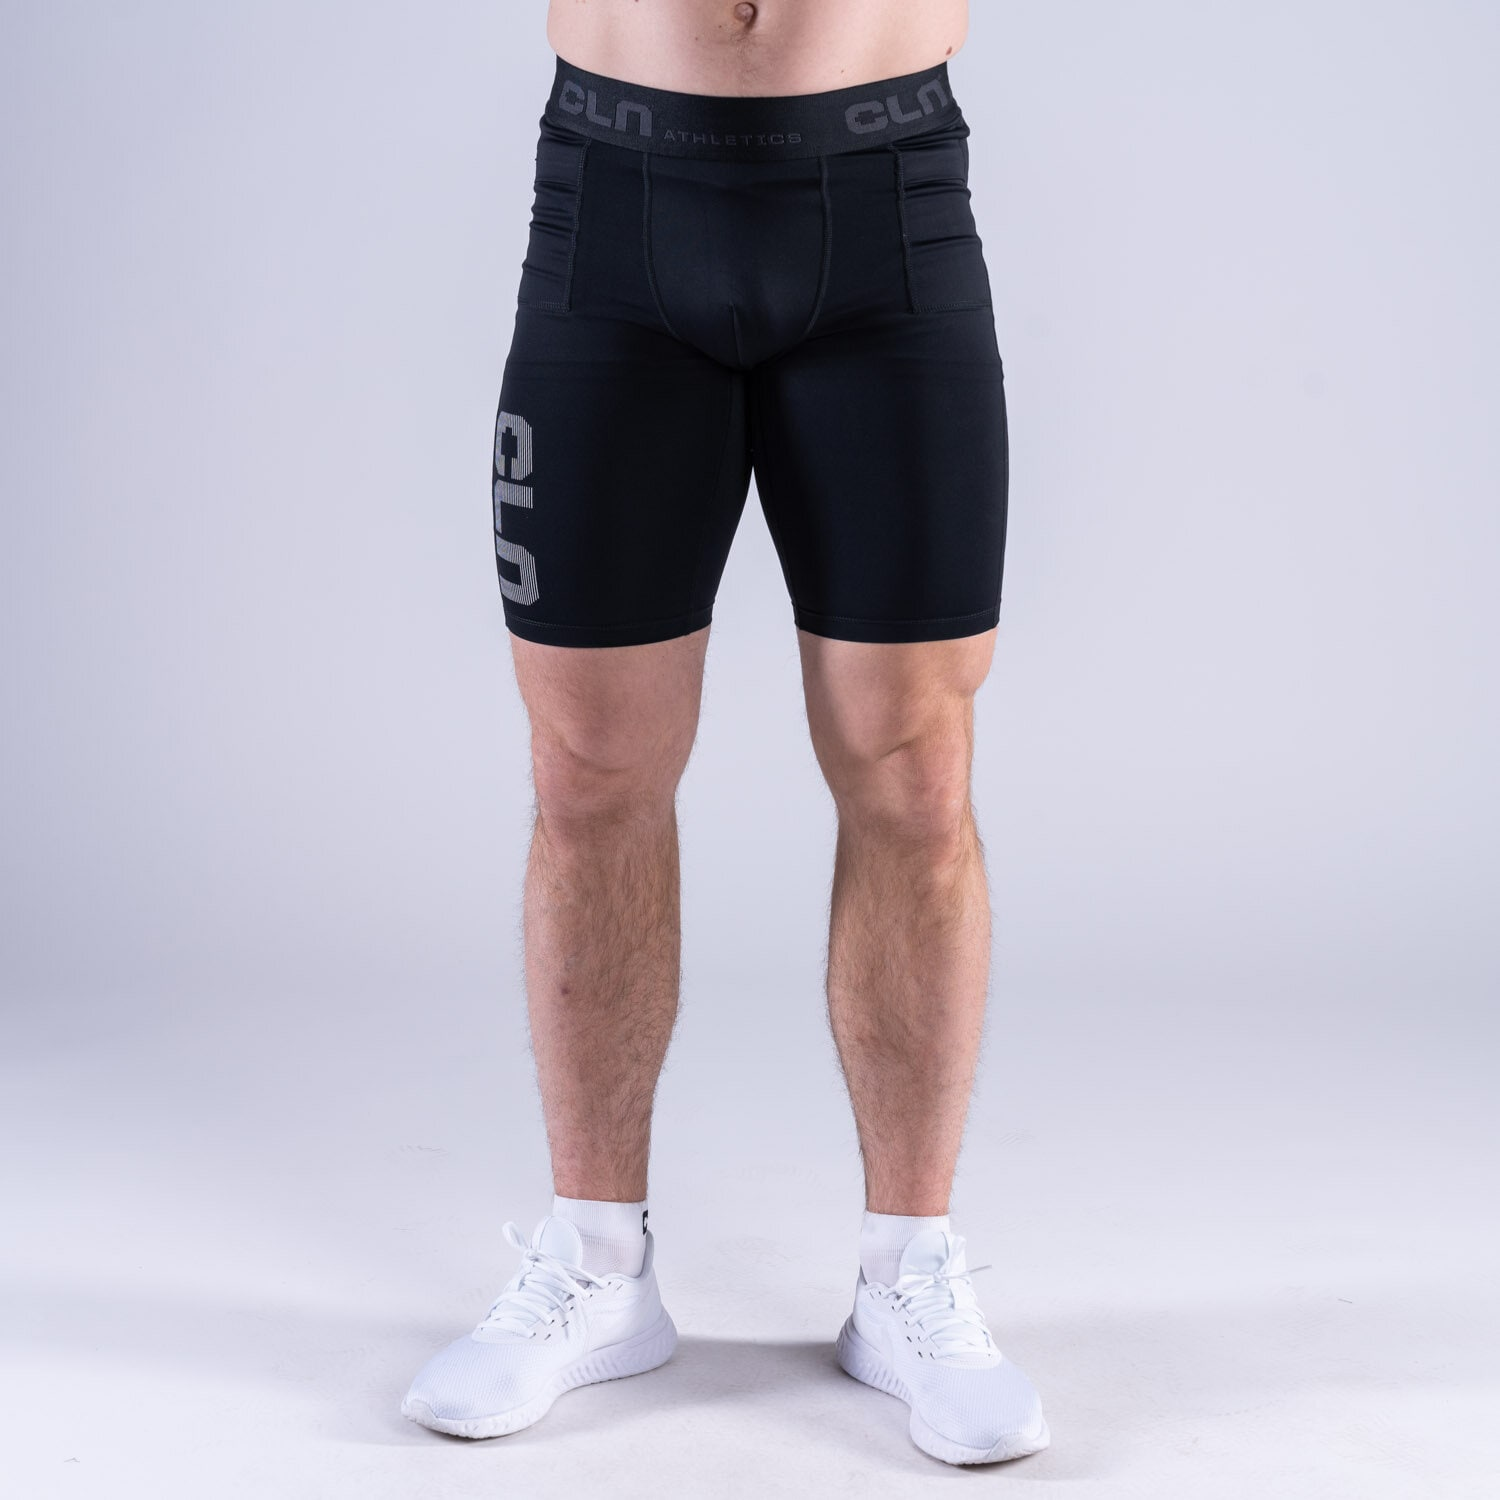 CLN Gard shorts Black